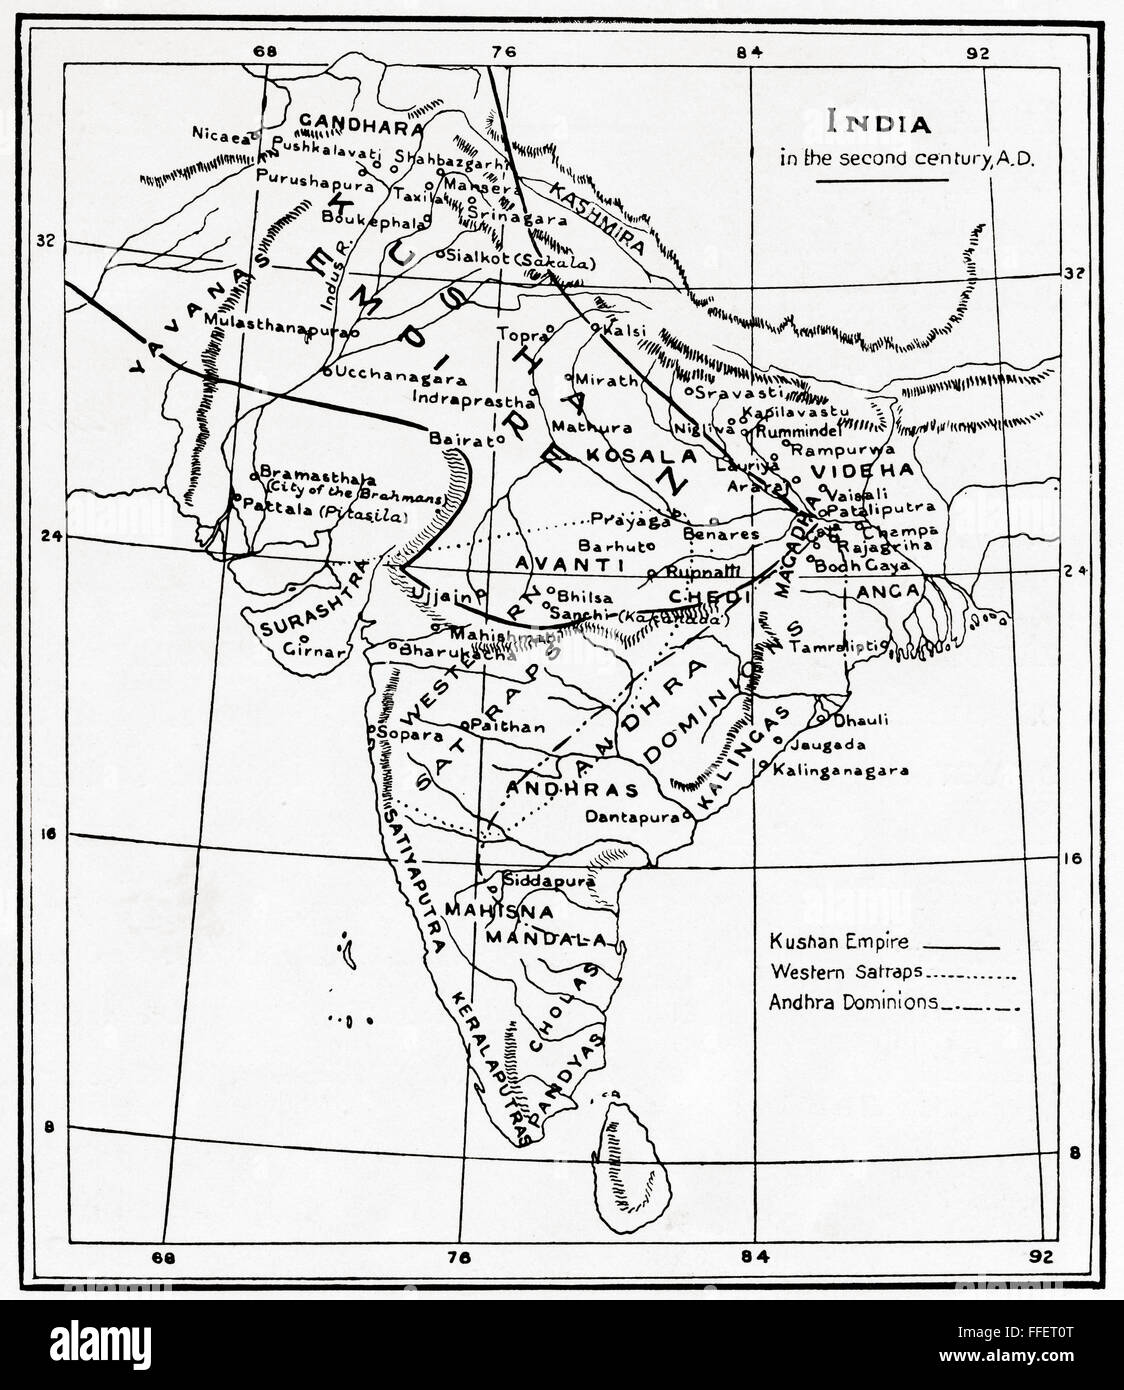 Map of India in the second century AD - Stock Image